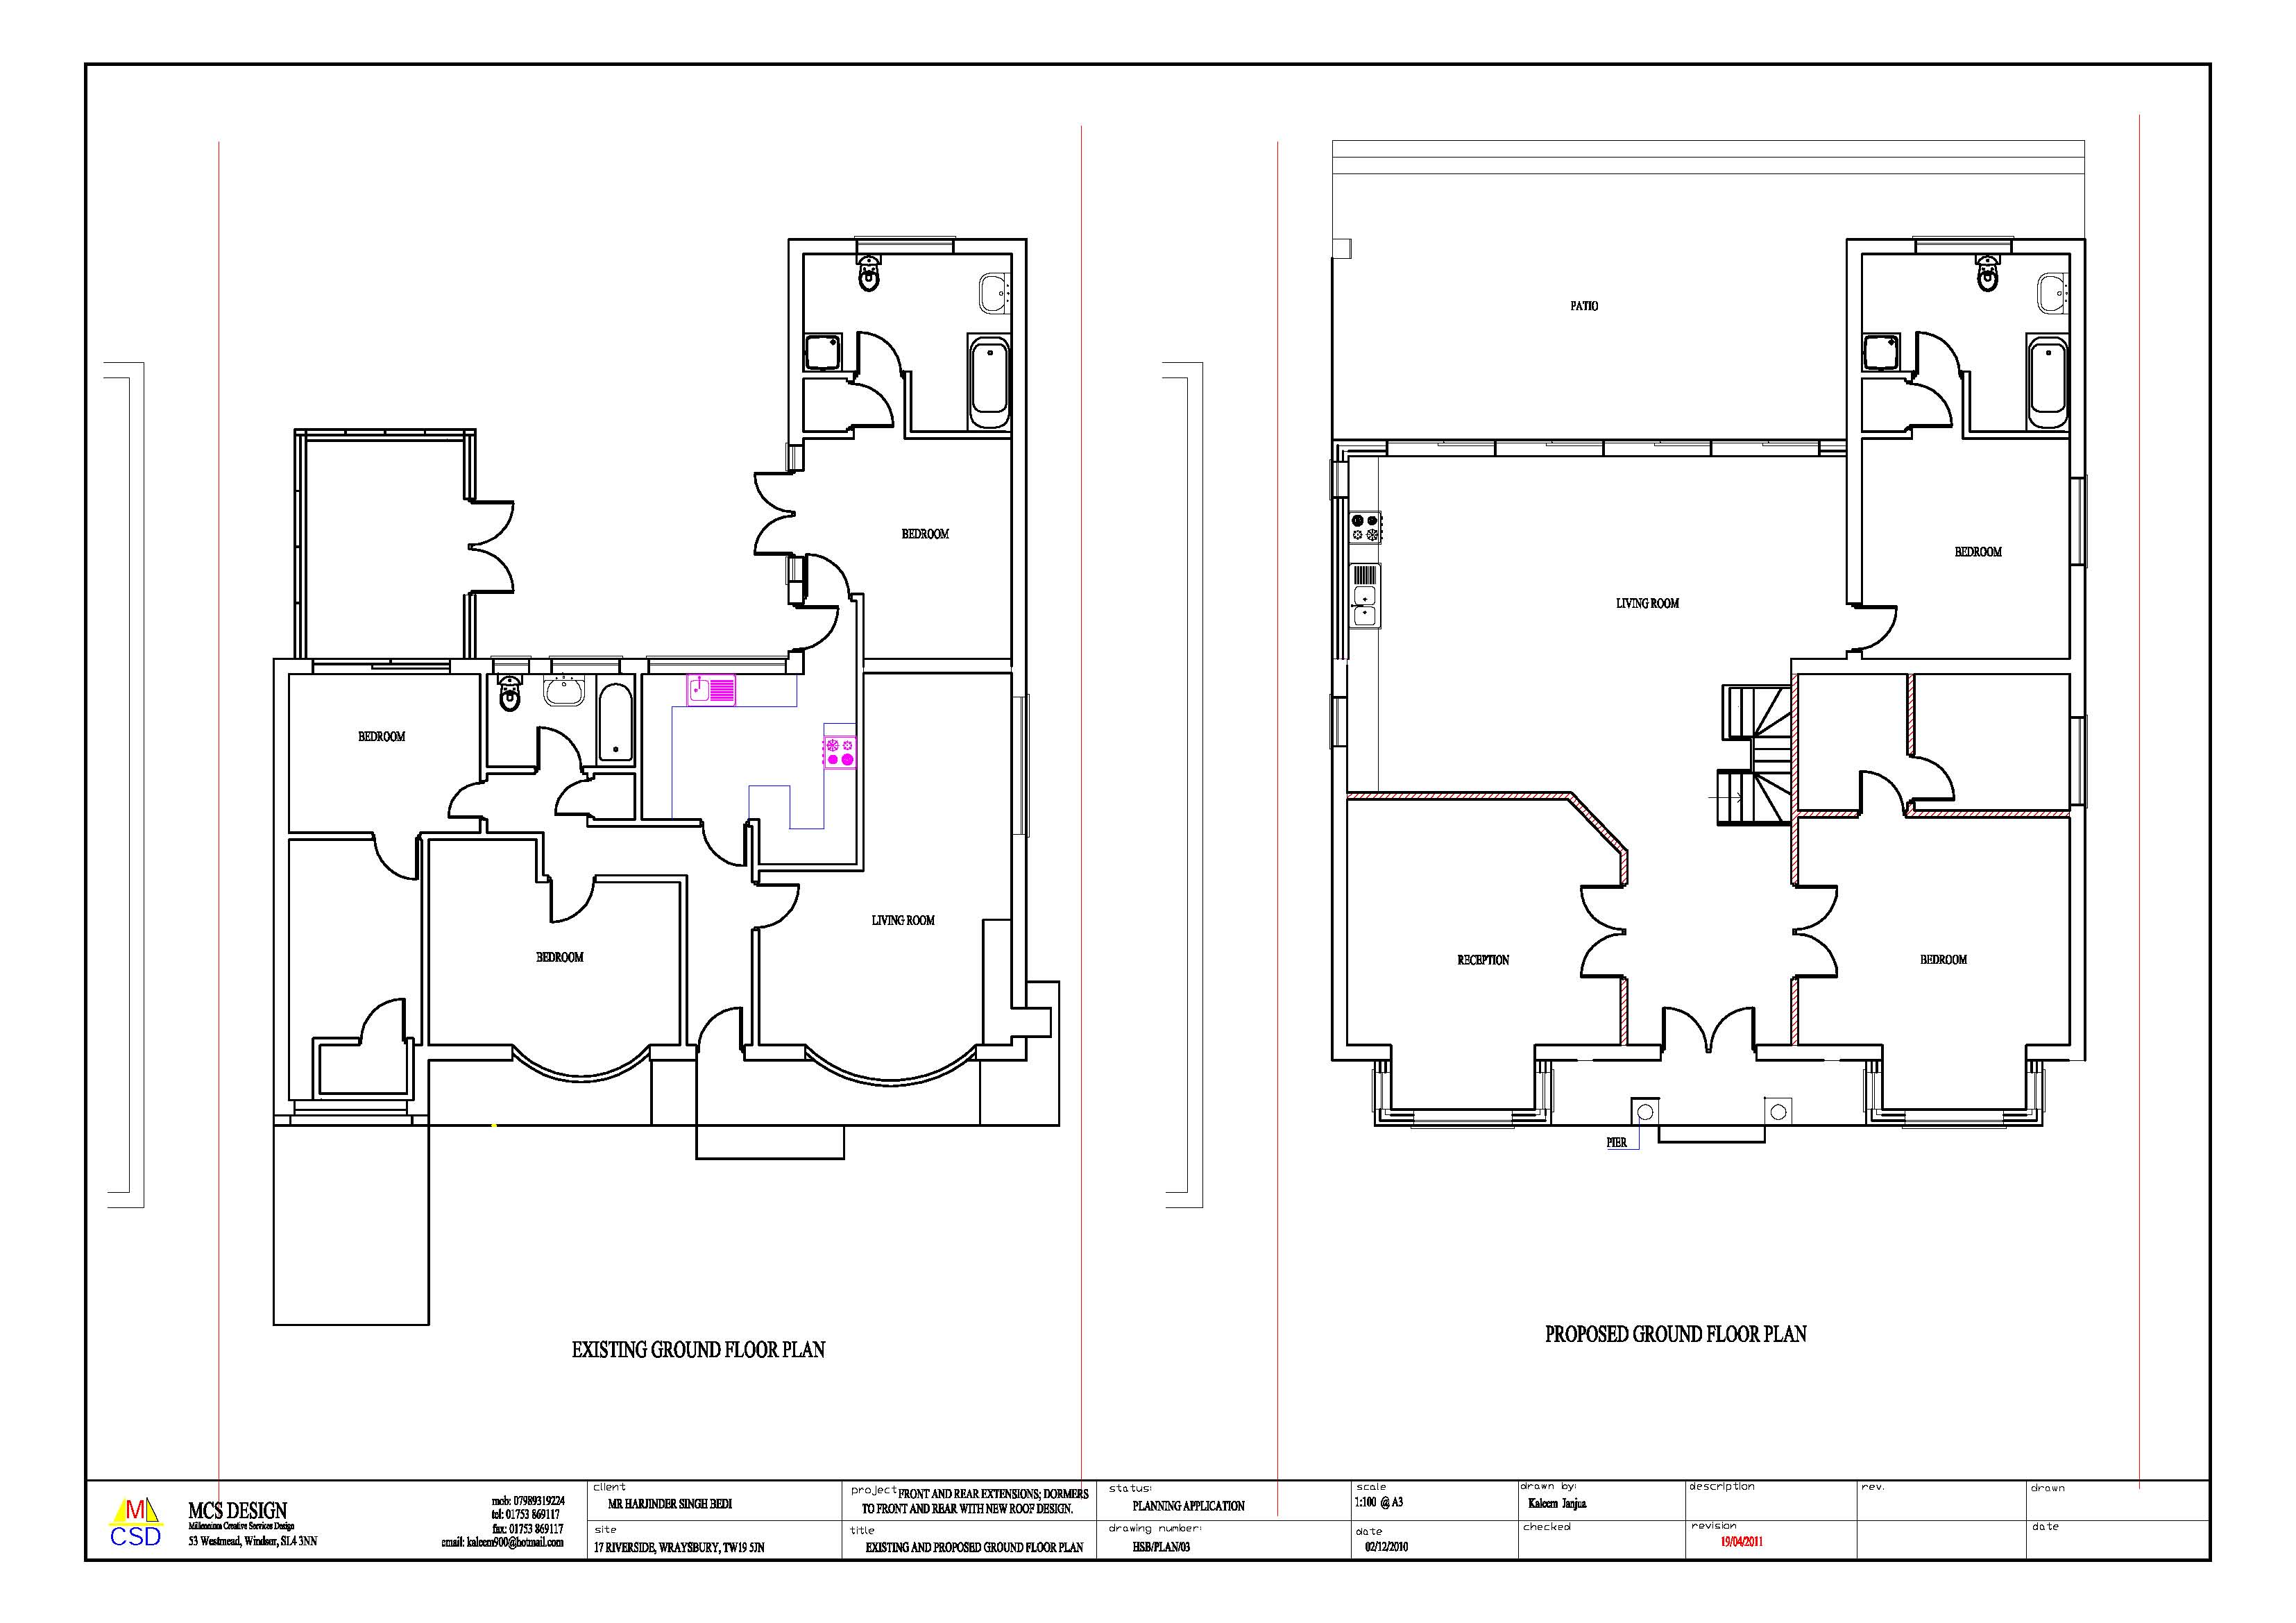 Portfolio m c s designs for Design my floor plan